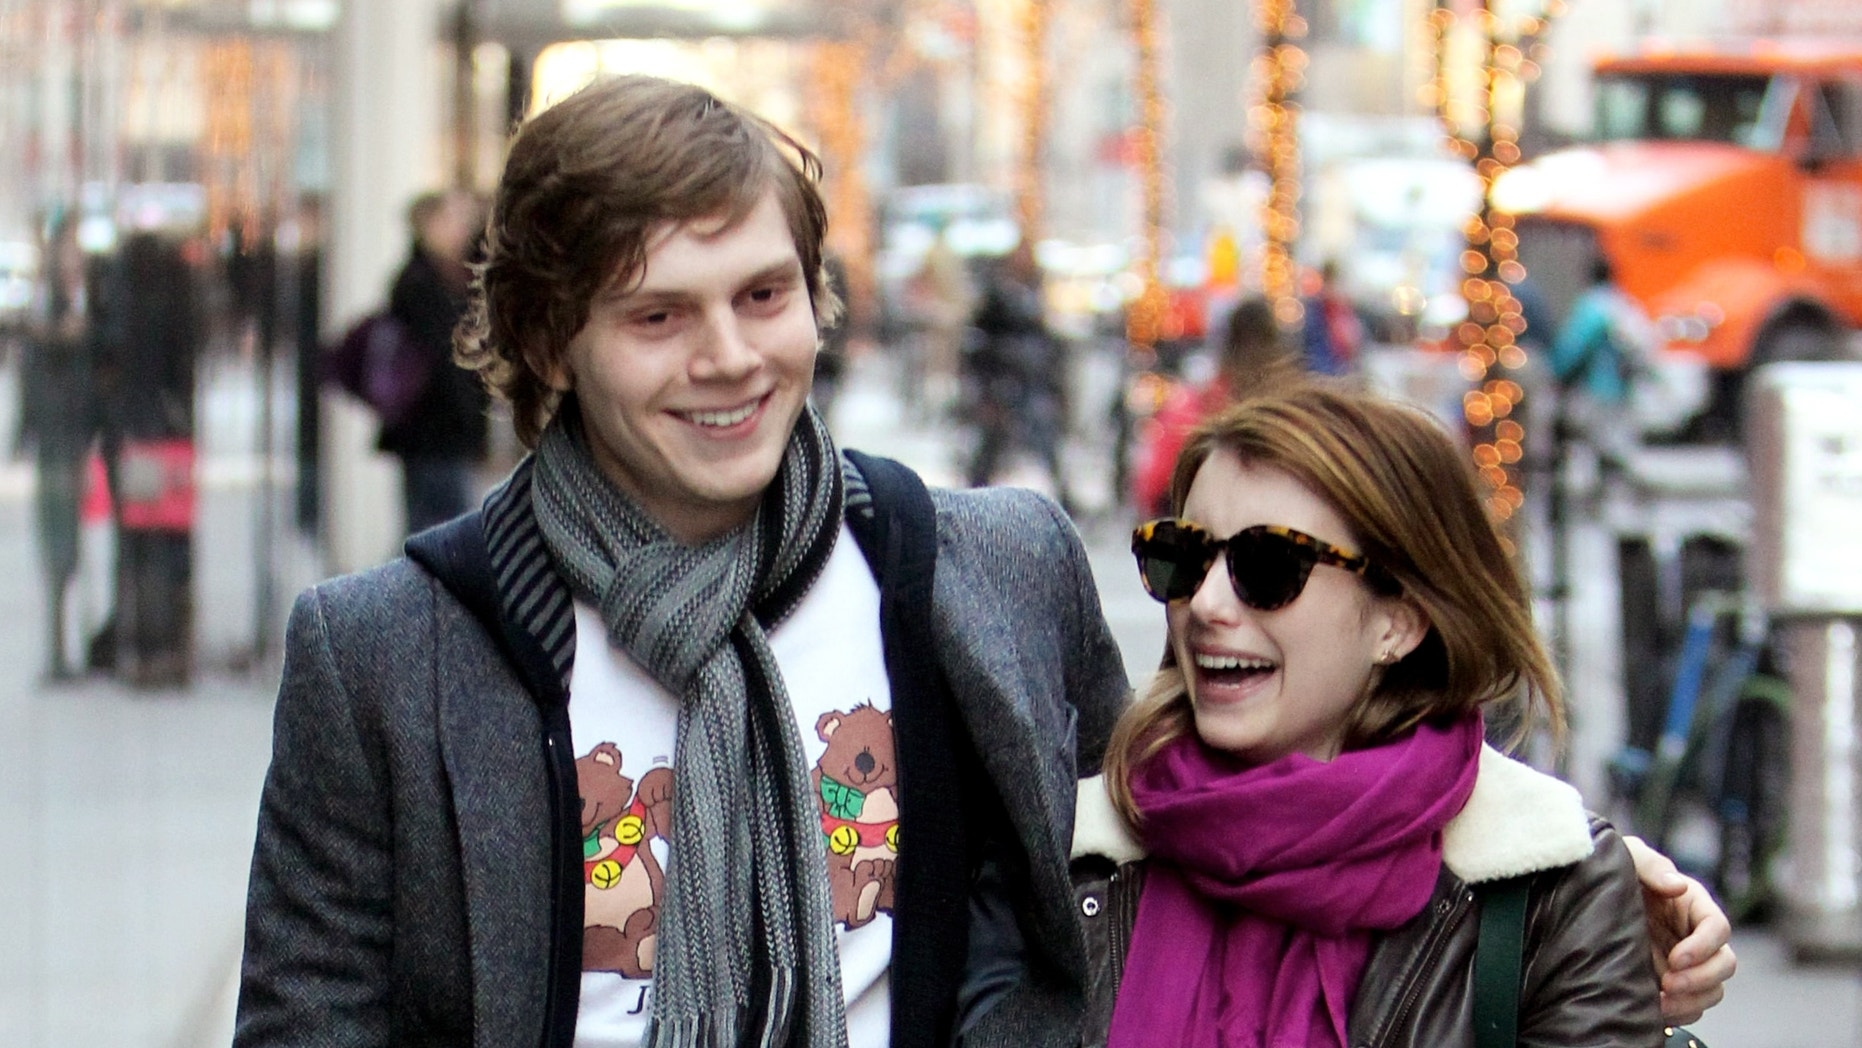 Evan Peters and Emma Roberts walk together in New York City.